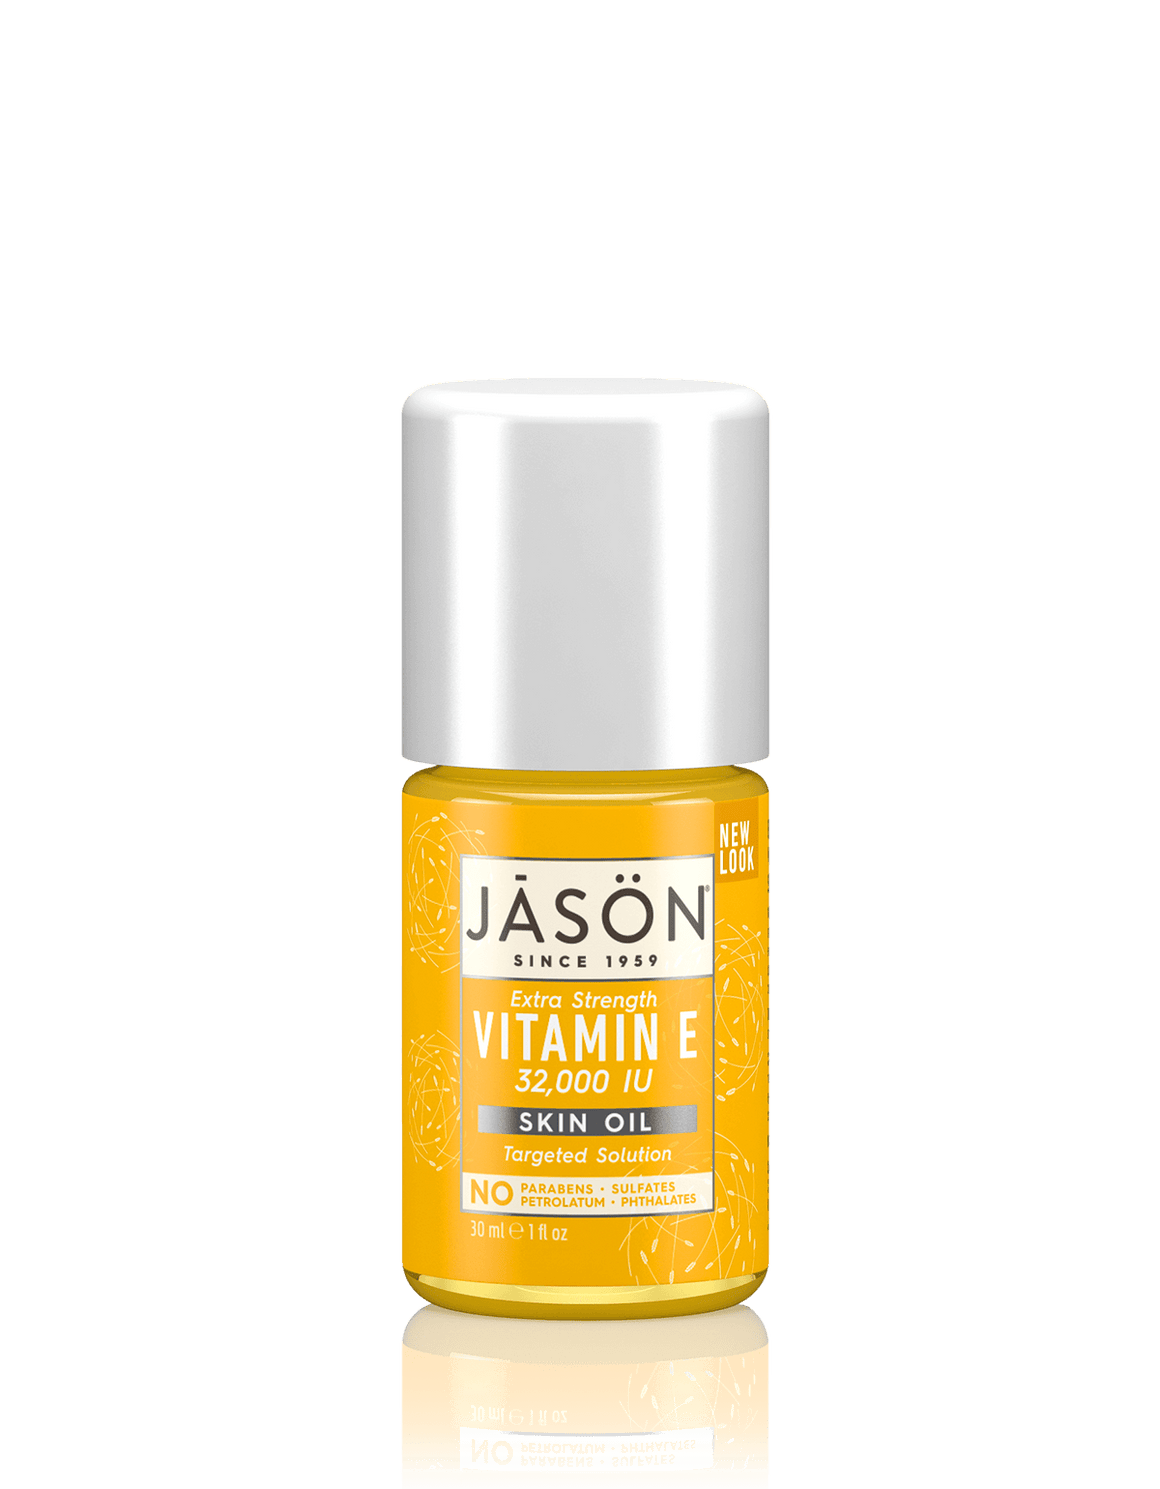 A bottle of Jason Vitamin E 32,000 IU Extra Strength Skin Oil